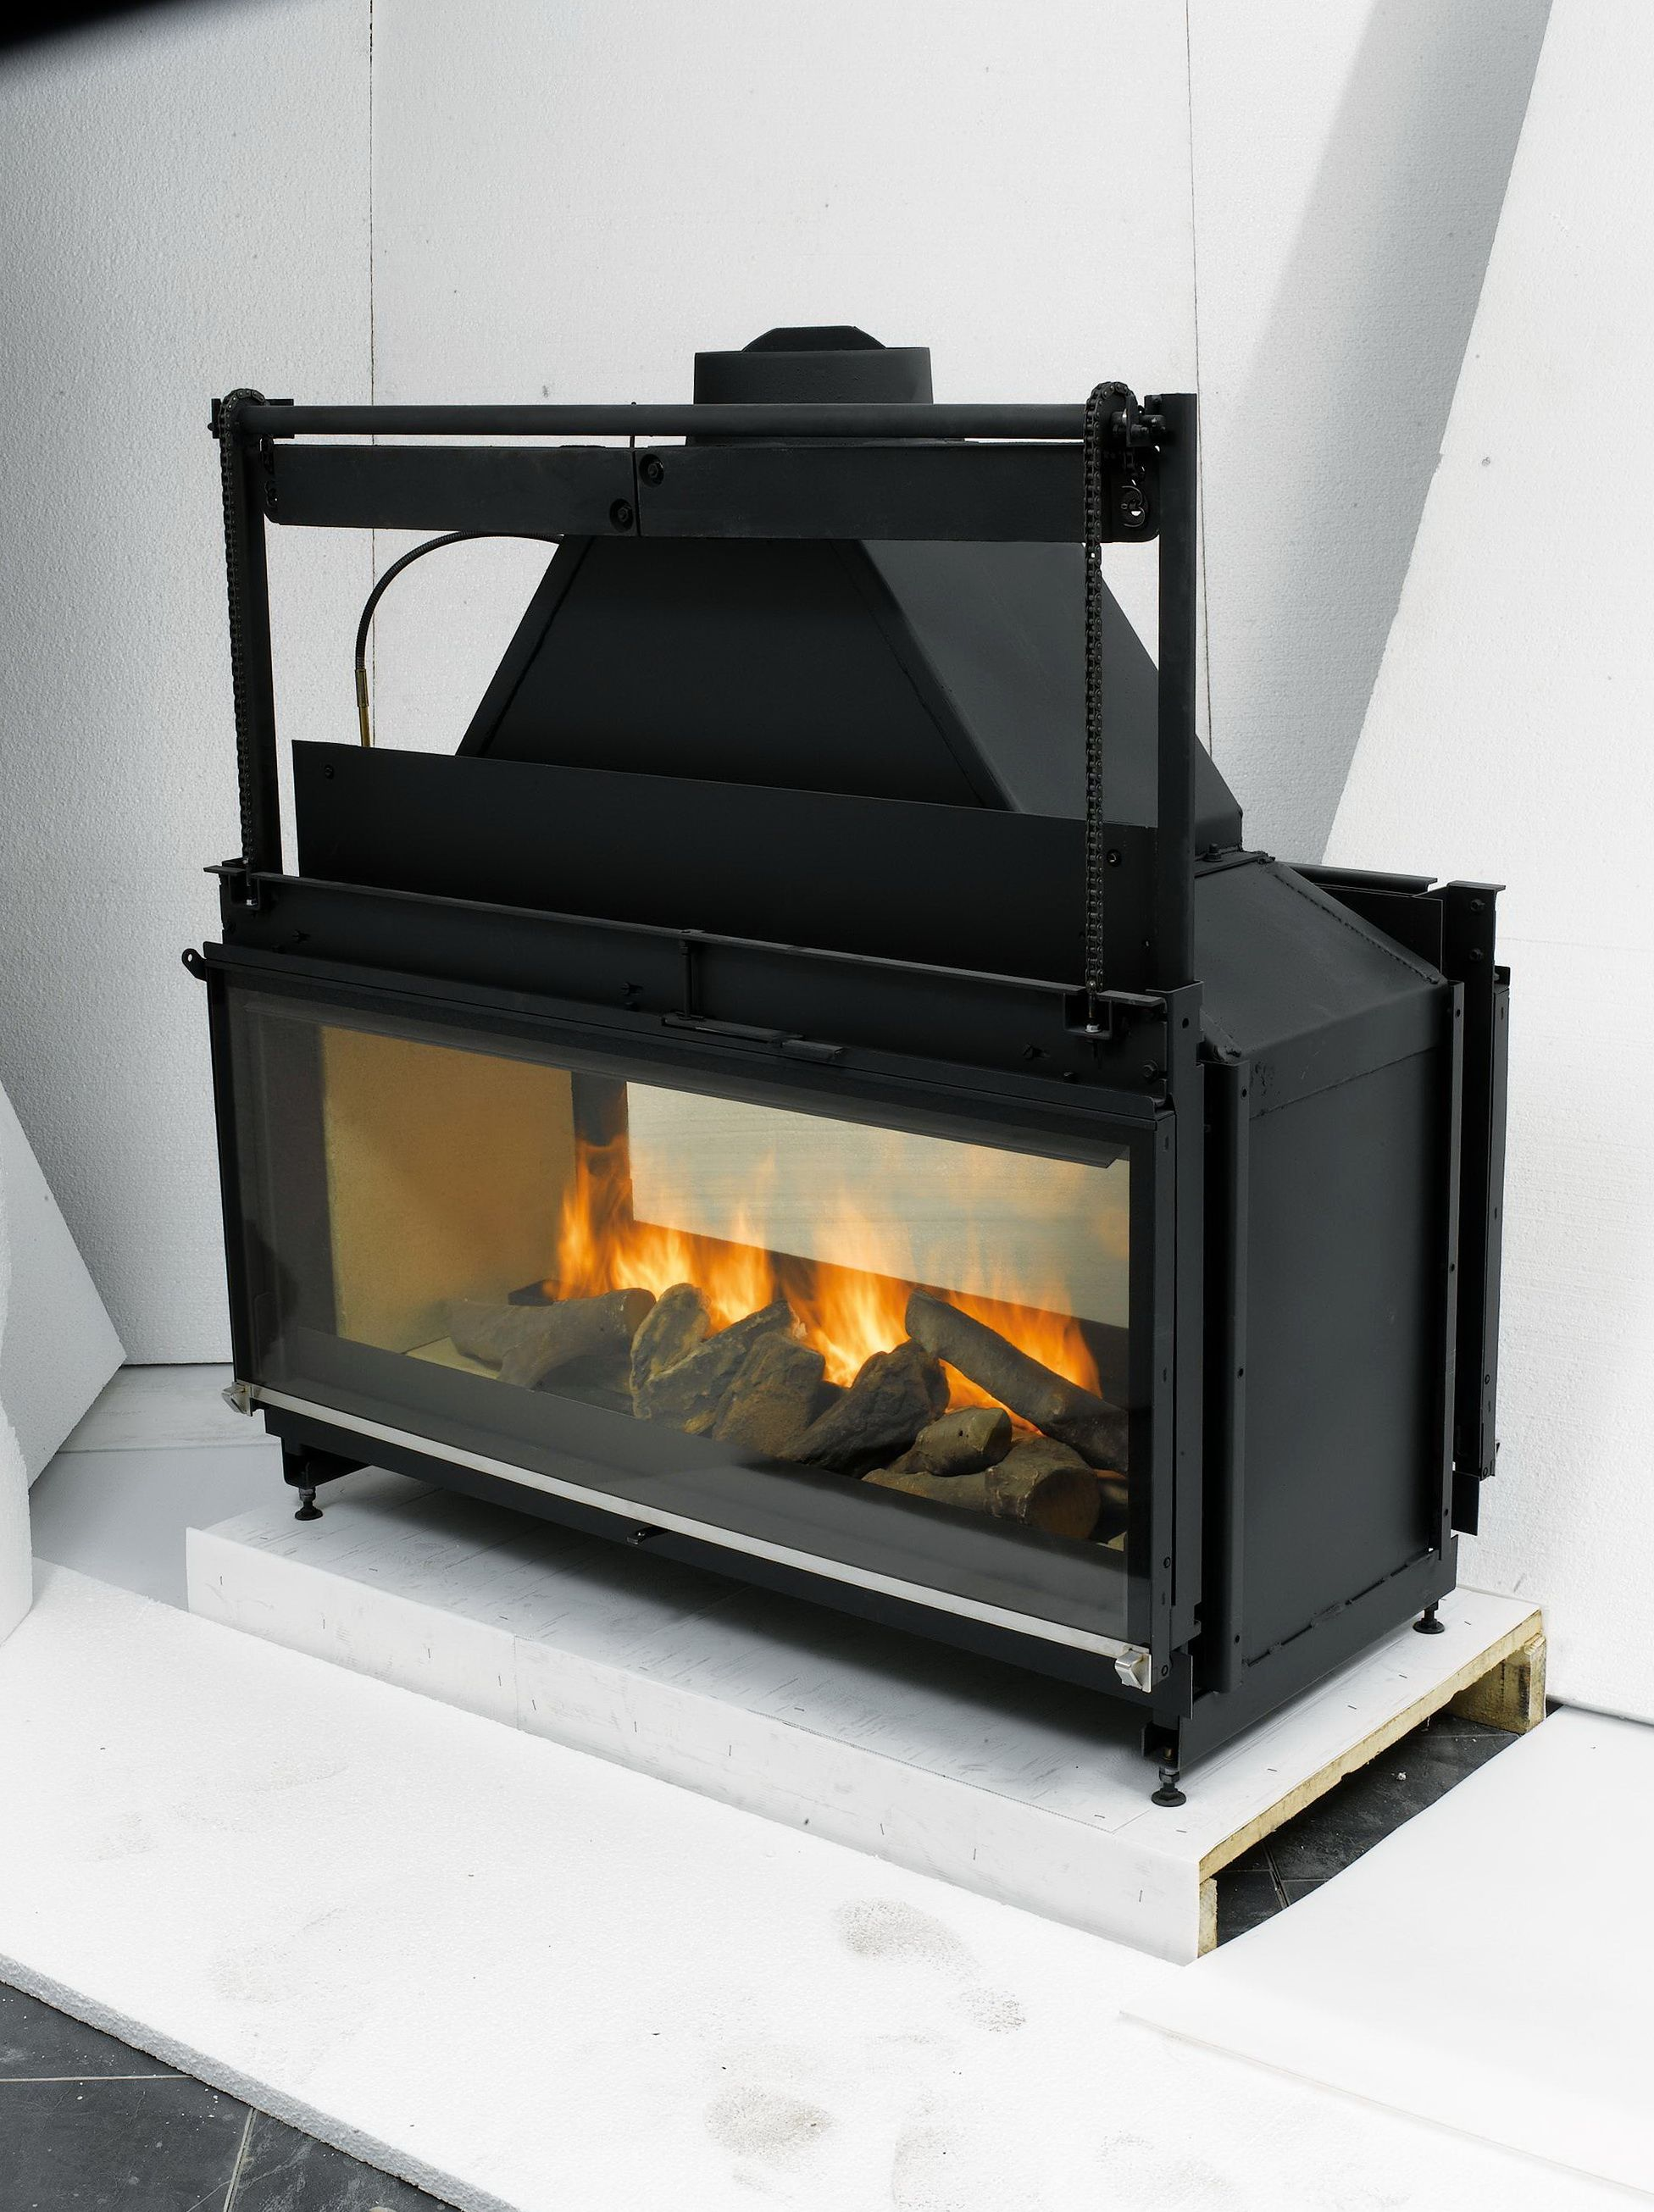 Insert Double Combustion Double Sided Wood Burning Fireplace Insert With Blower Fireplace